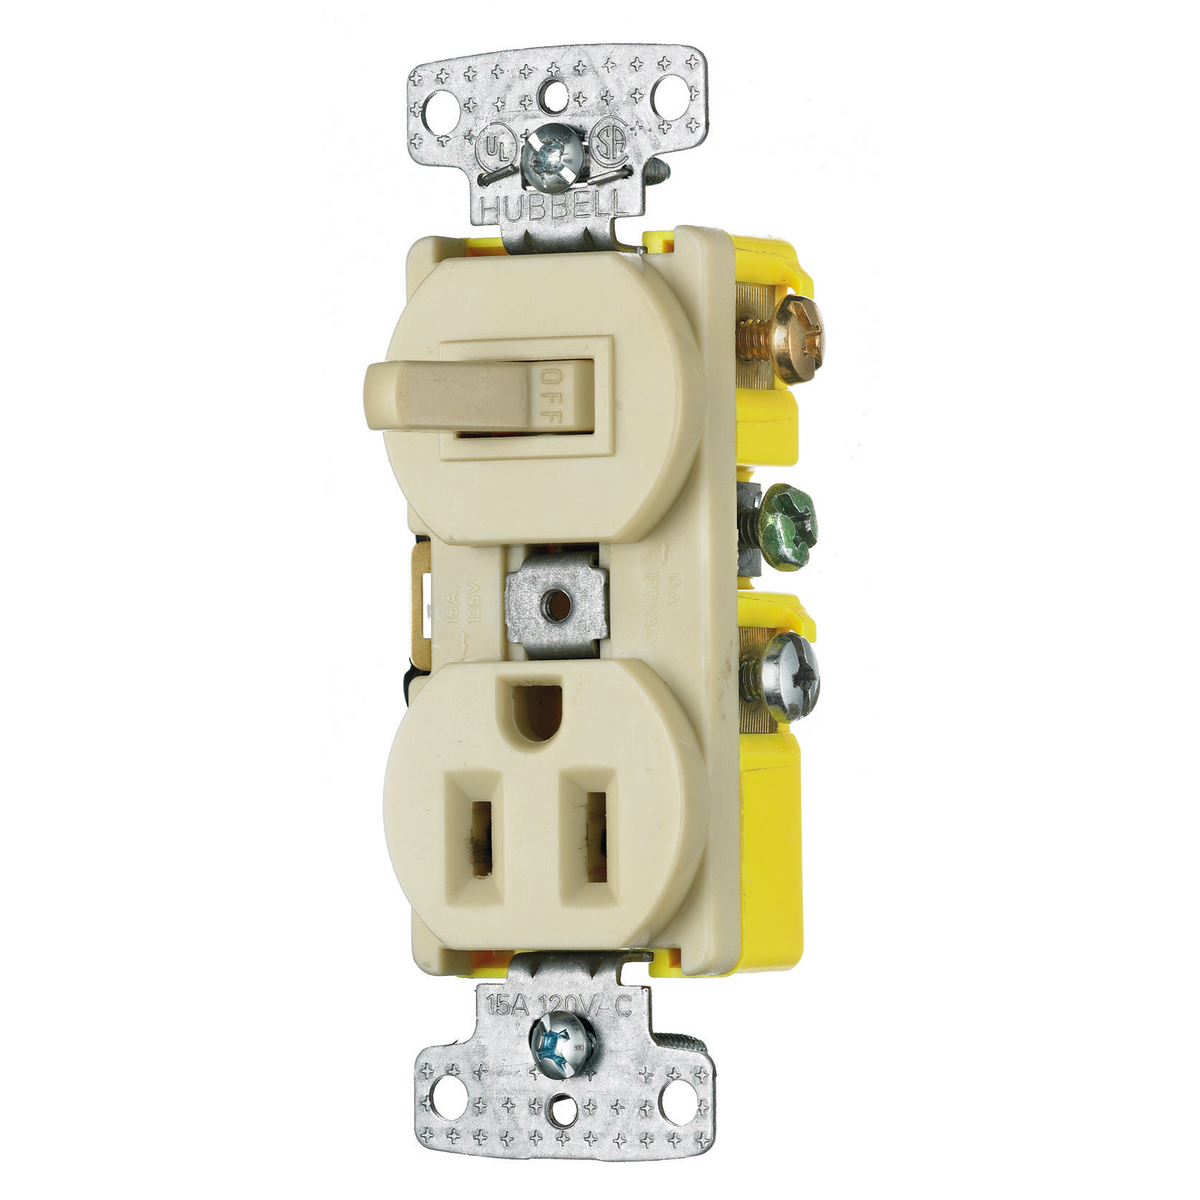 Hubbell RC108I 15 Amp 120/125 Volt 1-Pole Switch 2-Pole 3-Wire Receptacle Ivory Combination Switch